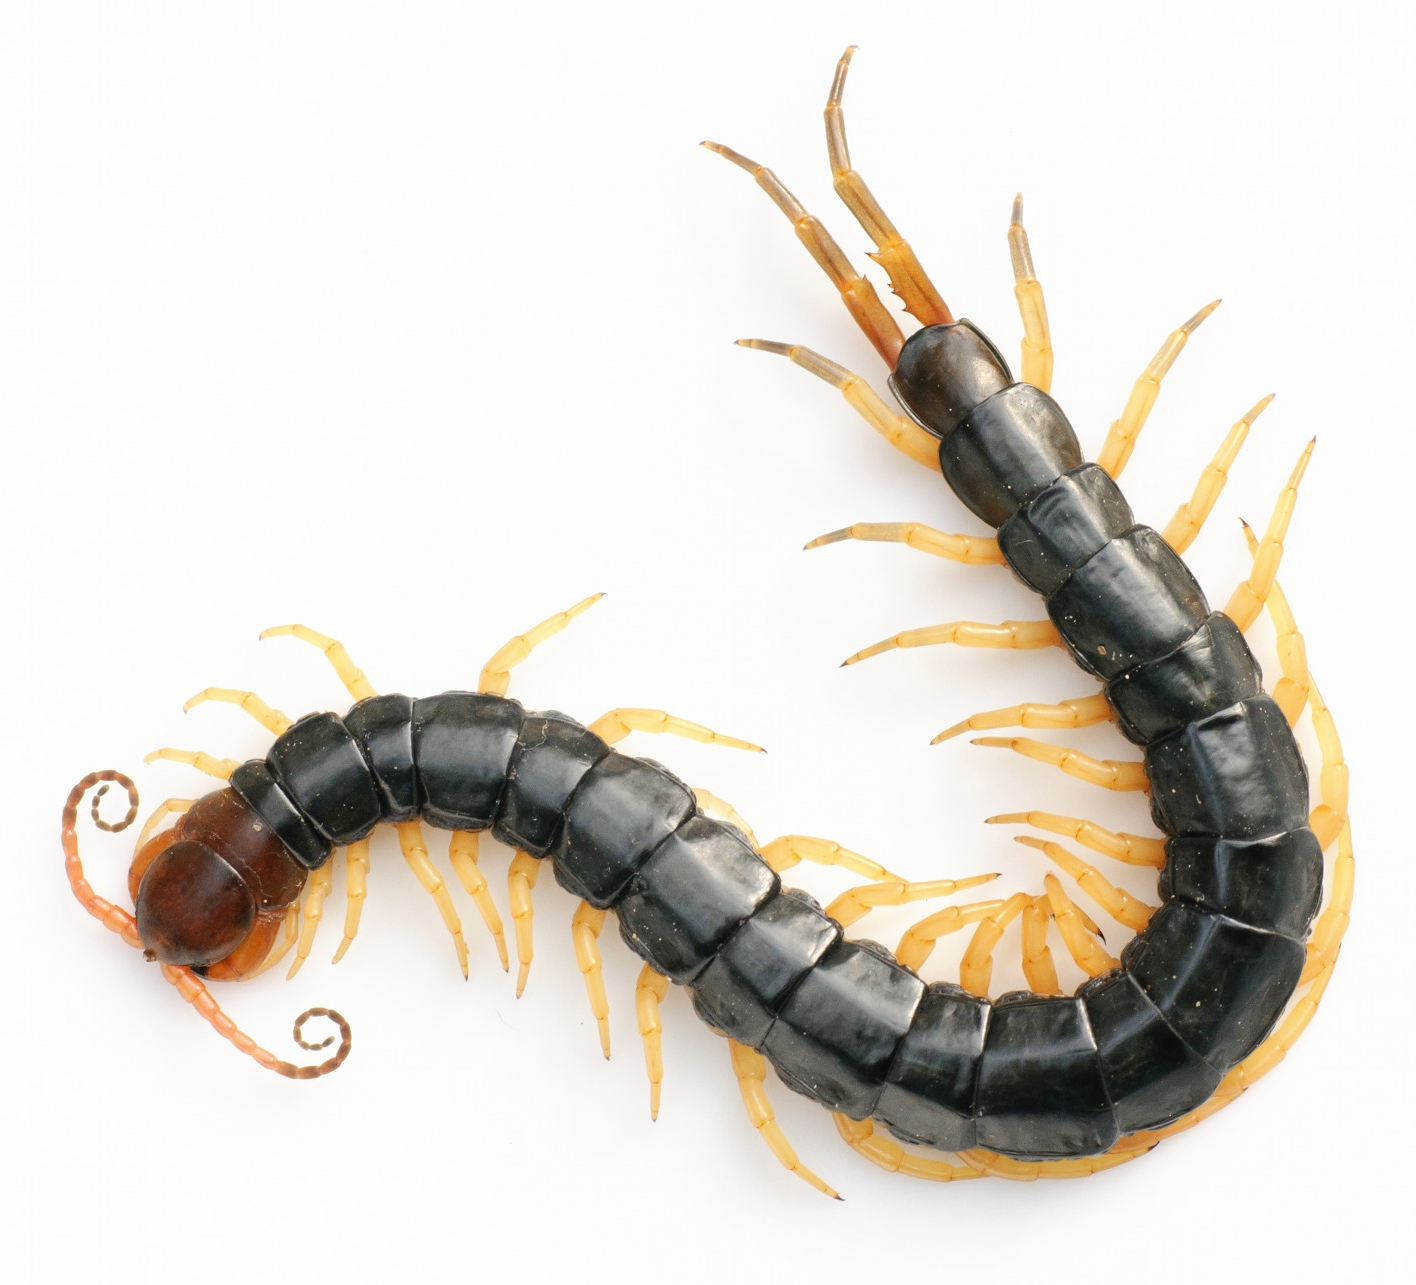 Texas Giant Centipede